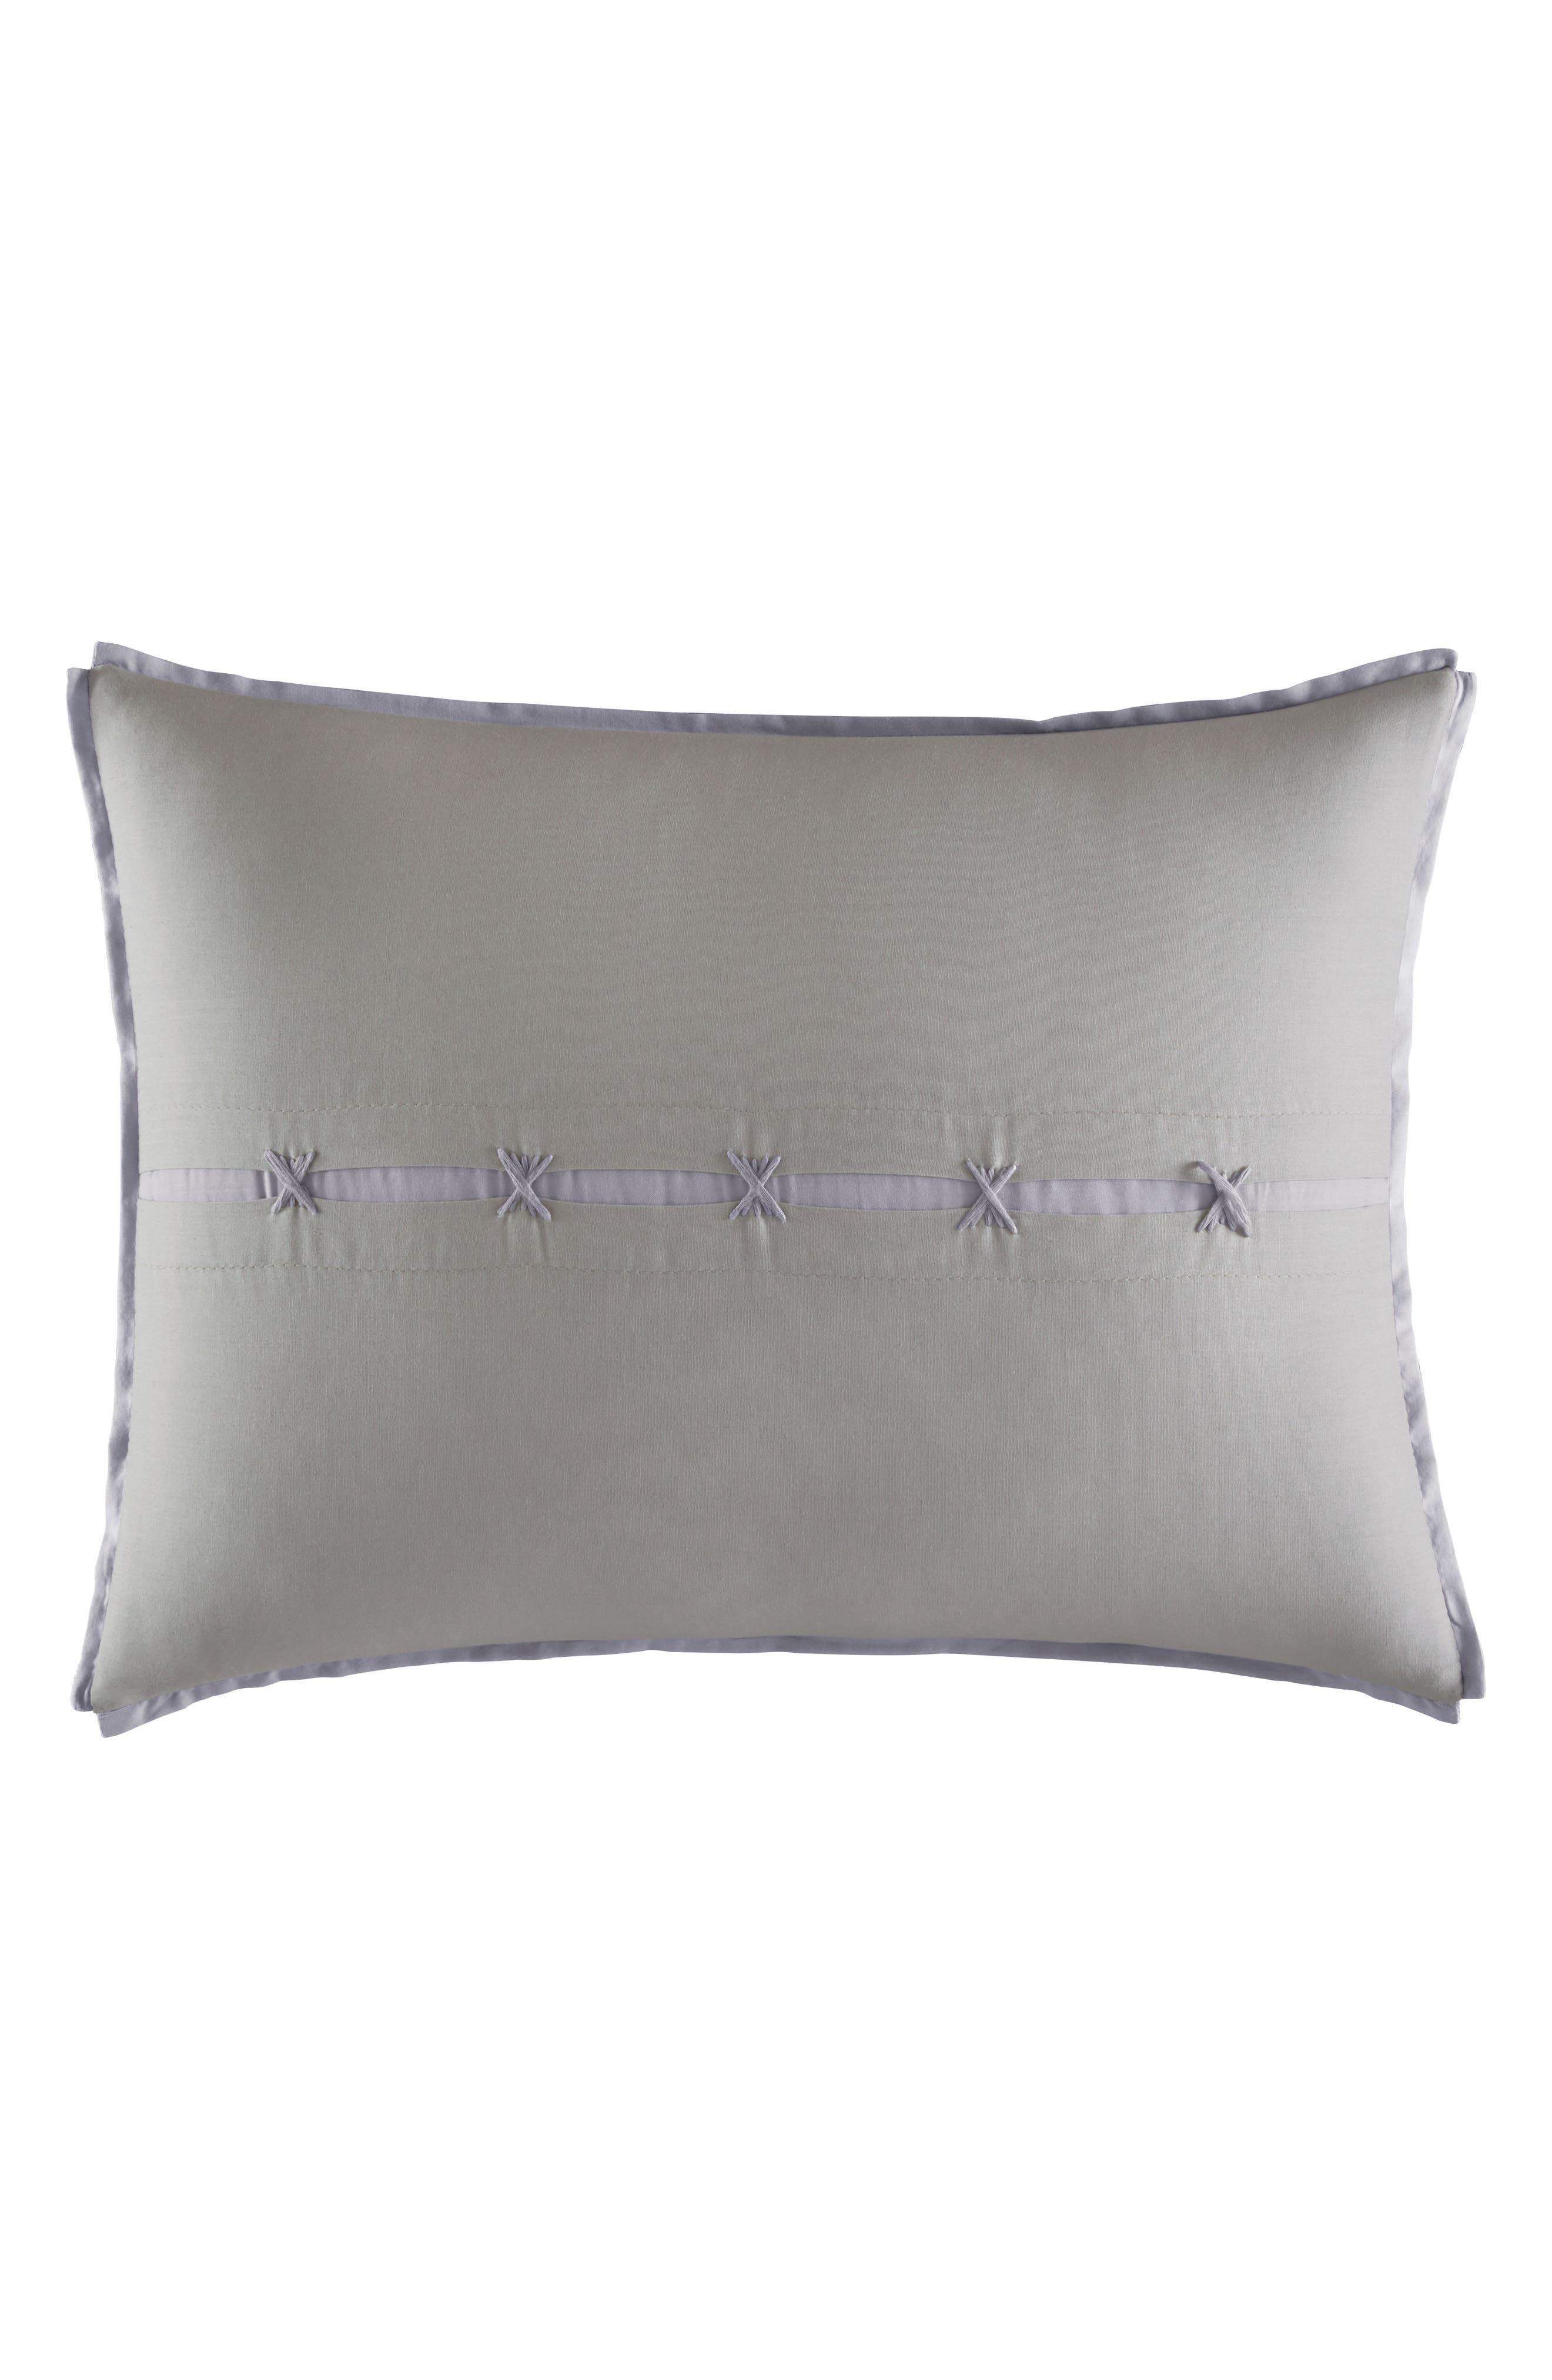 Transparent Leaves Accent Pillow,                             Main thumbnail 1, color,                             075